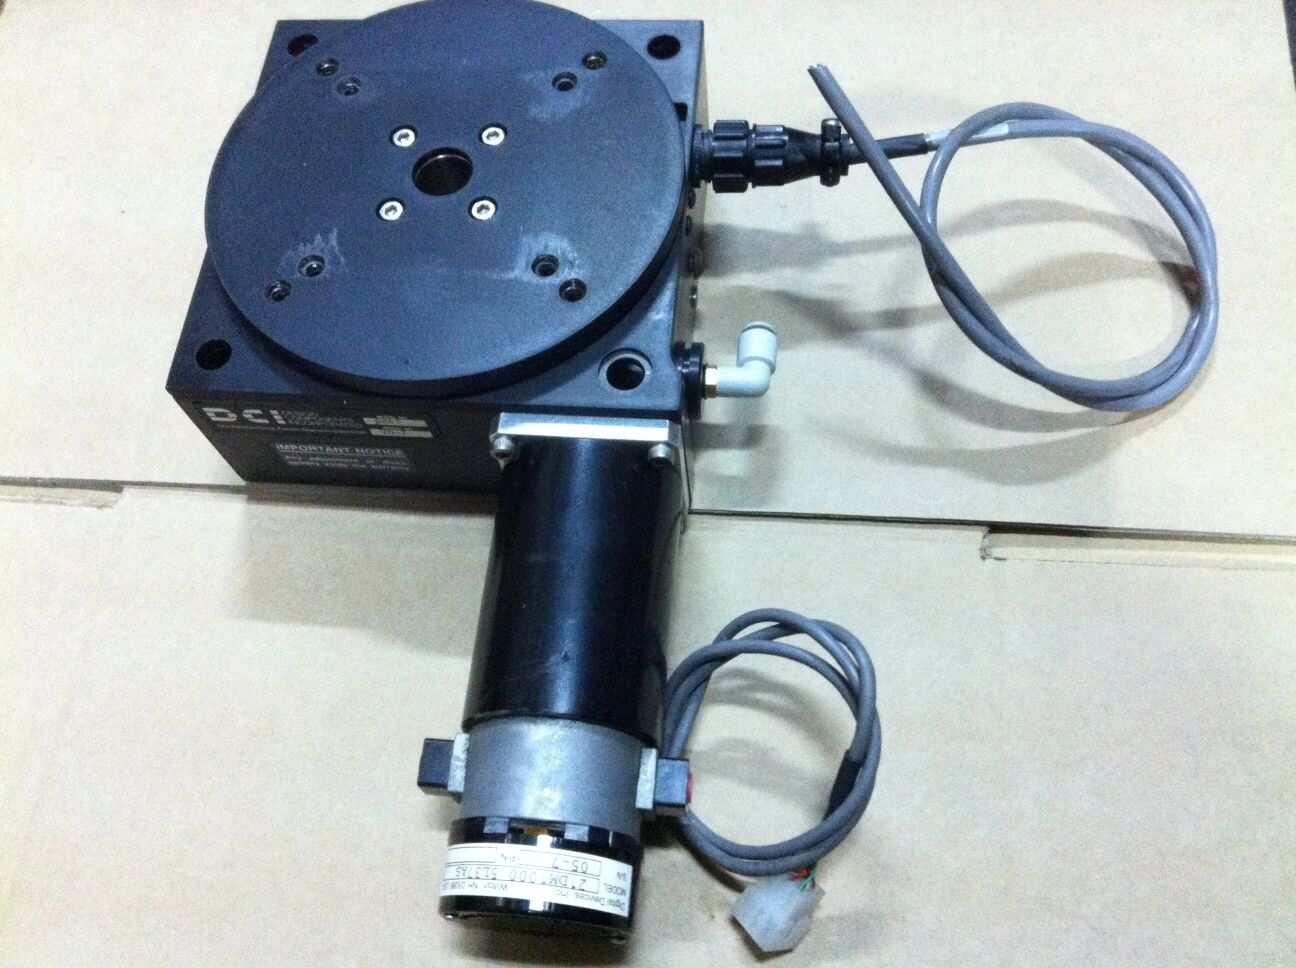 Dci Design Components Incorporated 6r45 Motorized Rotary